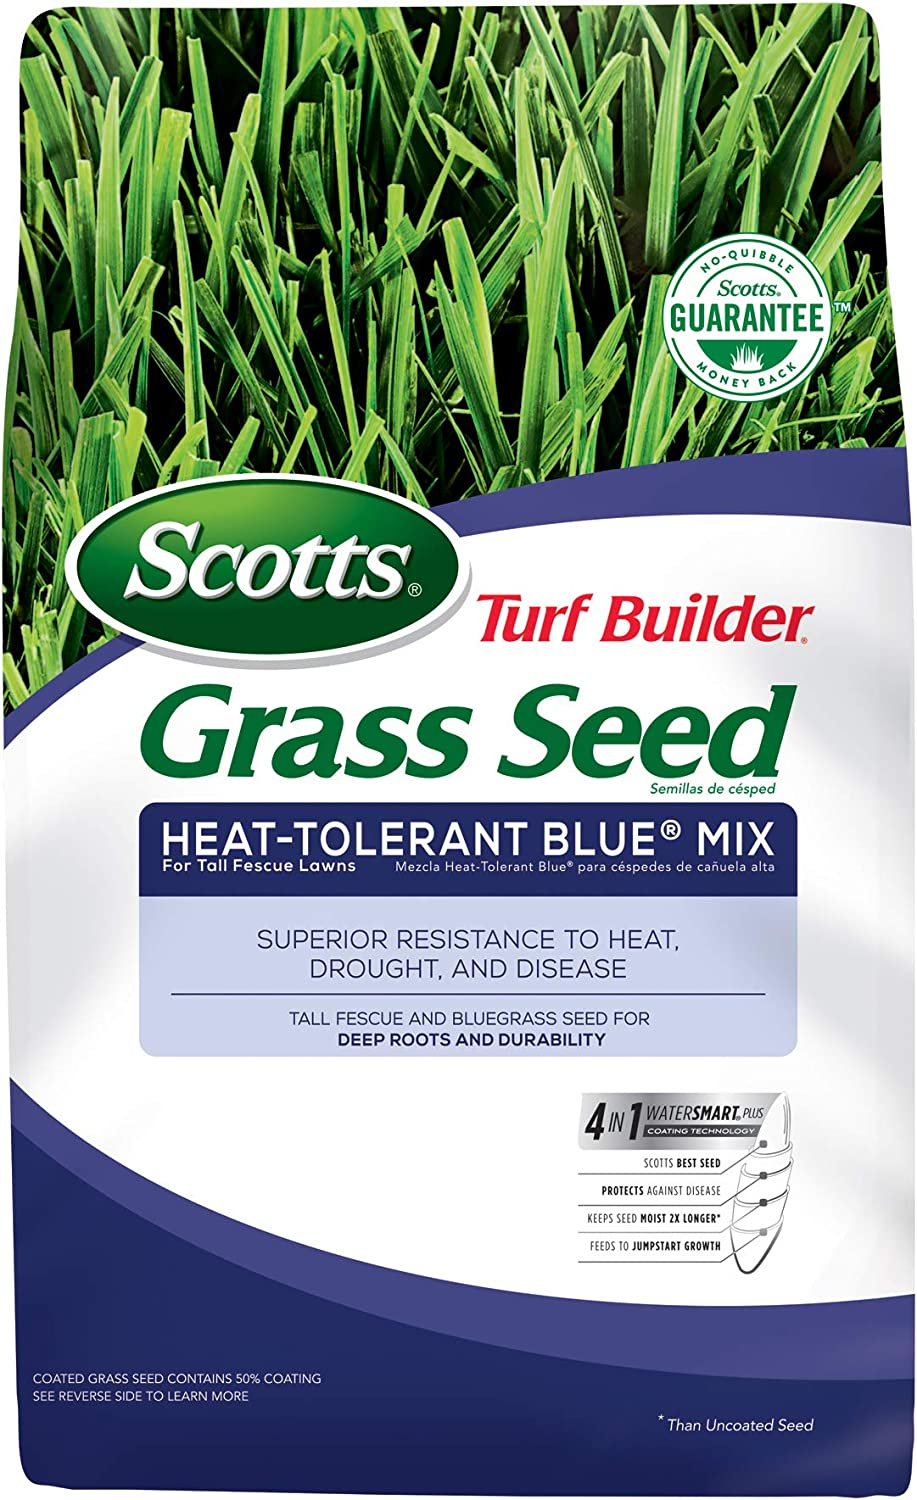 Scotts Turf Builder Grass Denver Mall Seed Heat-Tolerant For Blue F Mix Tall SEAL limited product